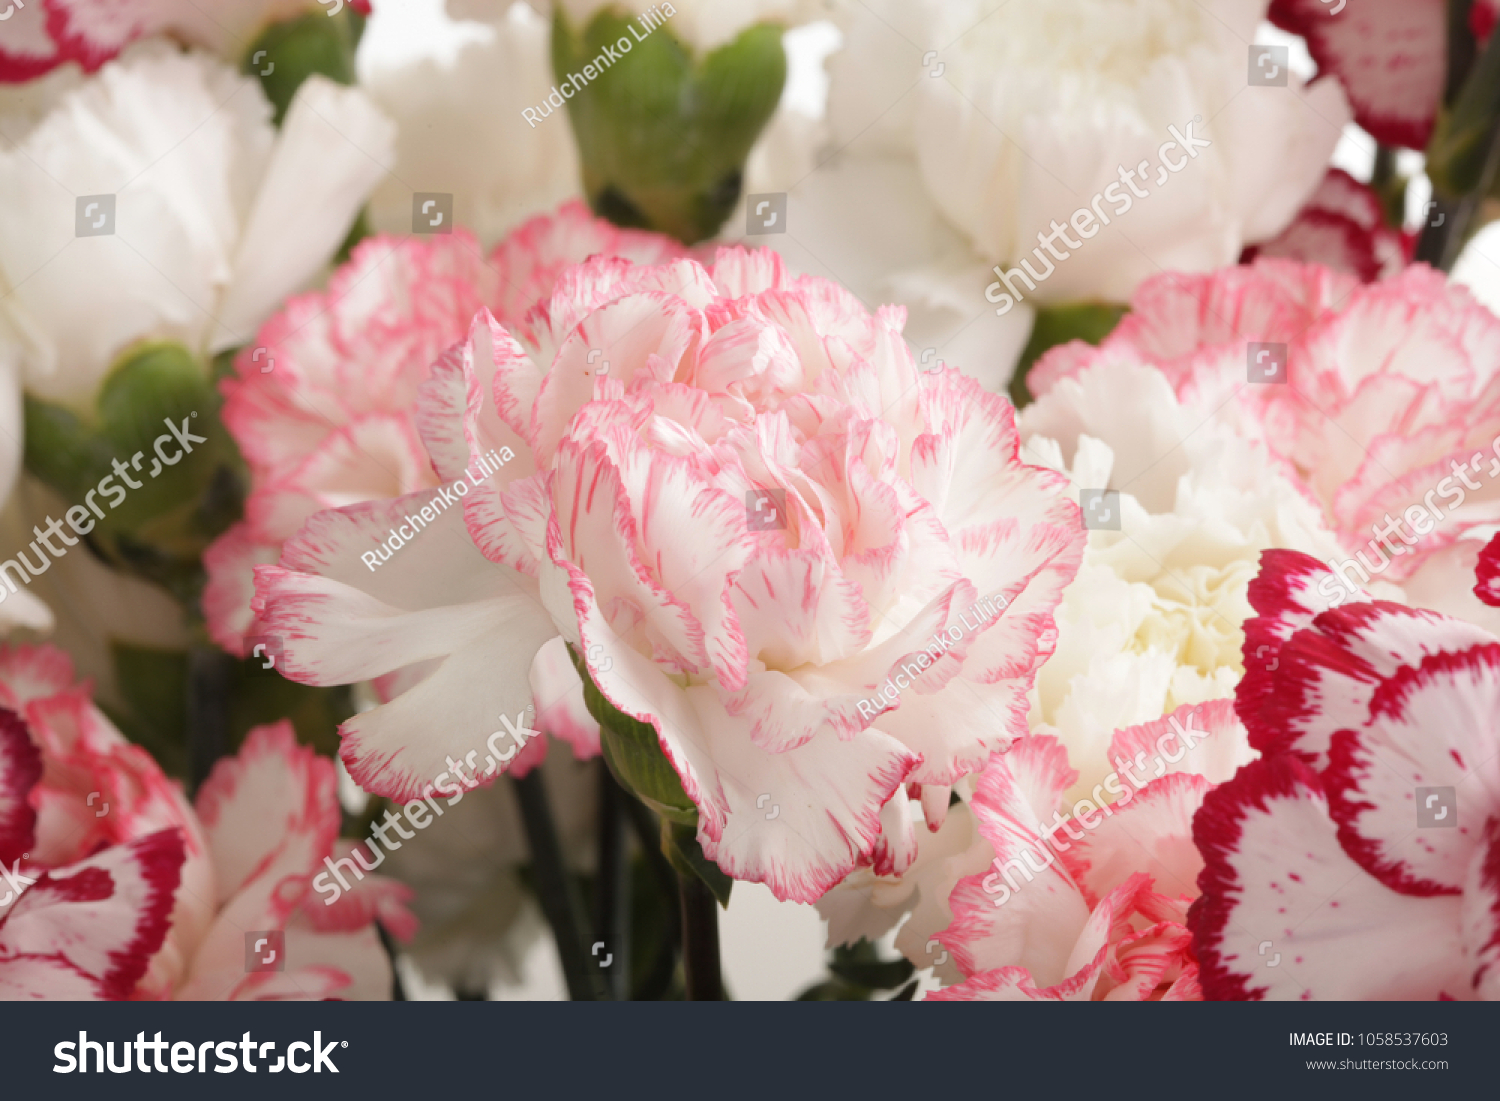 Pink White Carnation Flower Bouquet Stock Photo (Royalty Free ...